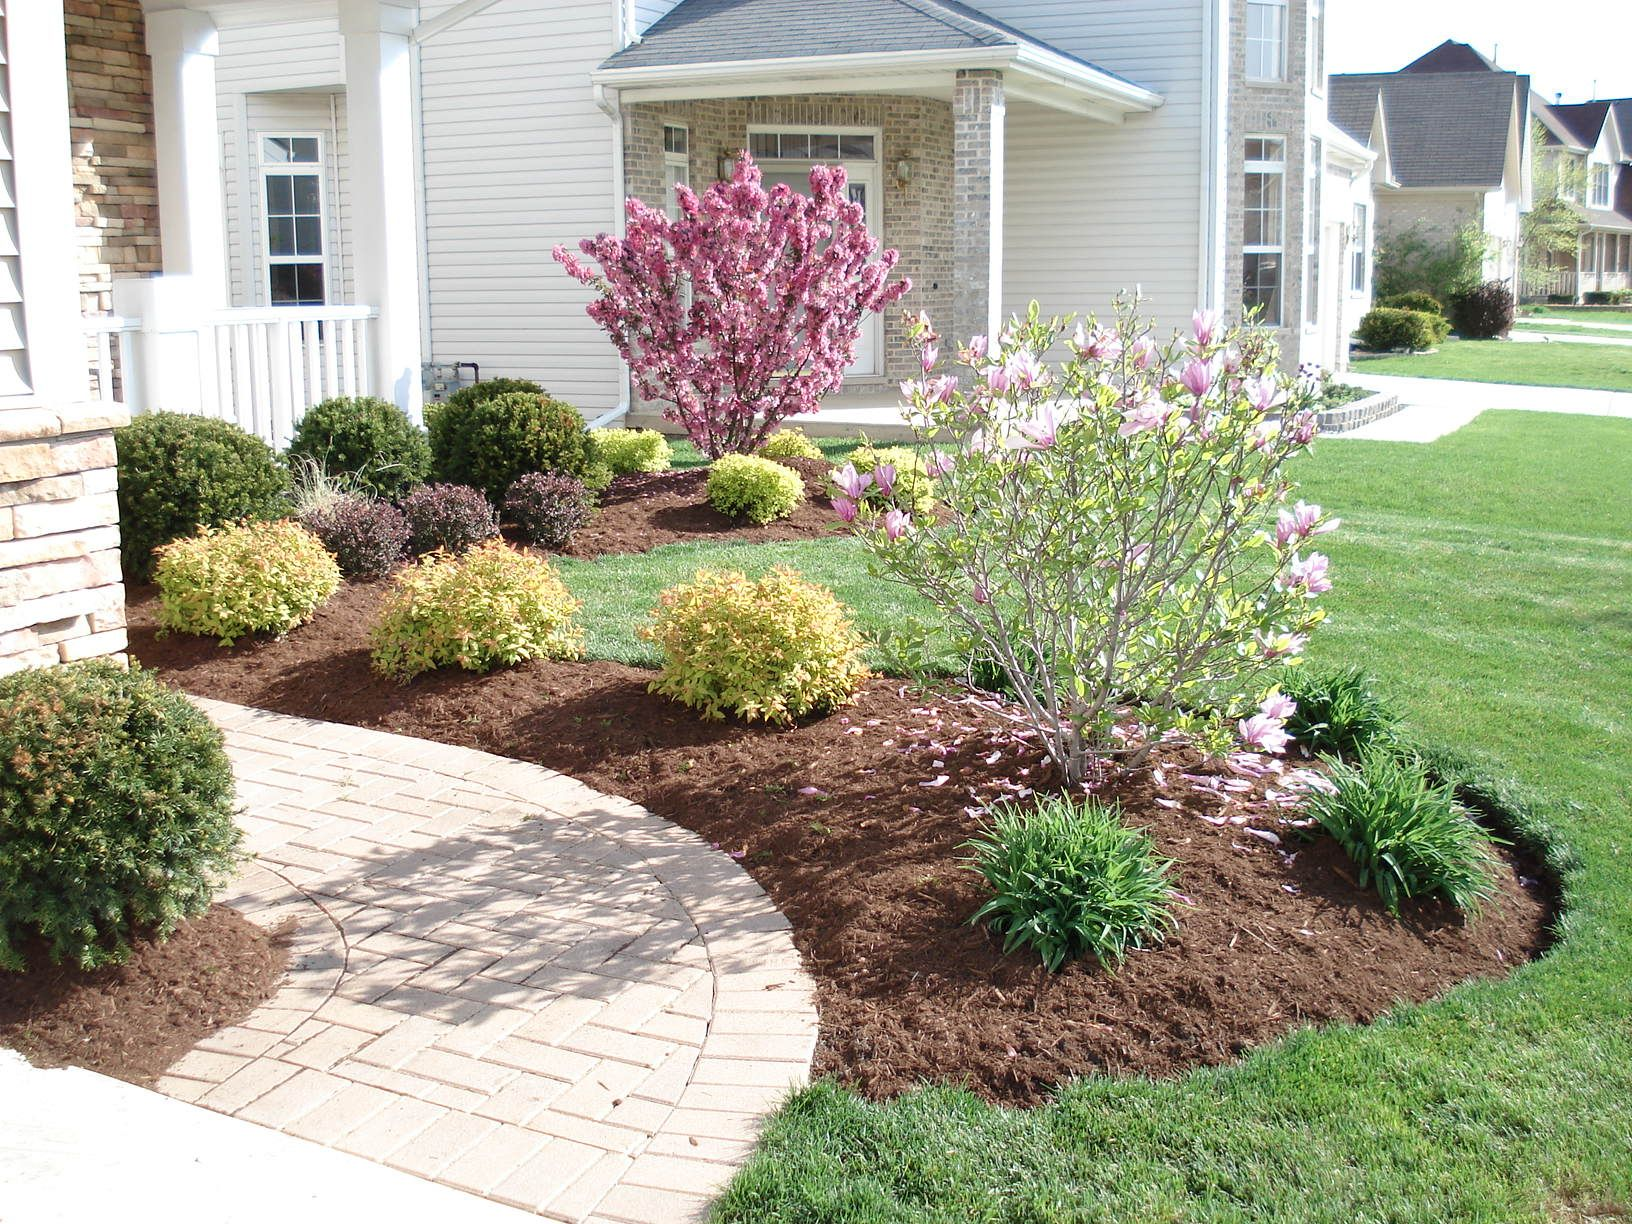 Simple front yard landscaping ideas landscape front yard for Simple landscape ideas for front of house